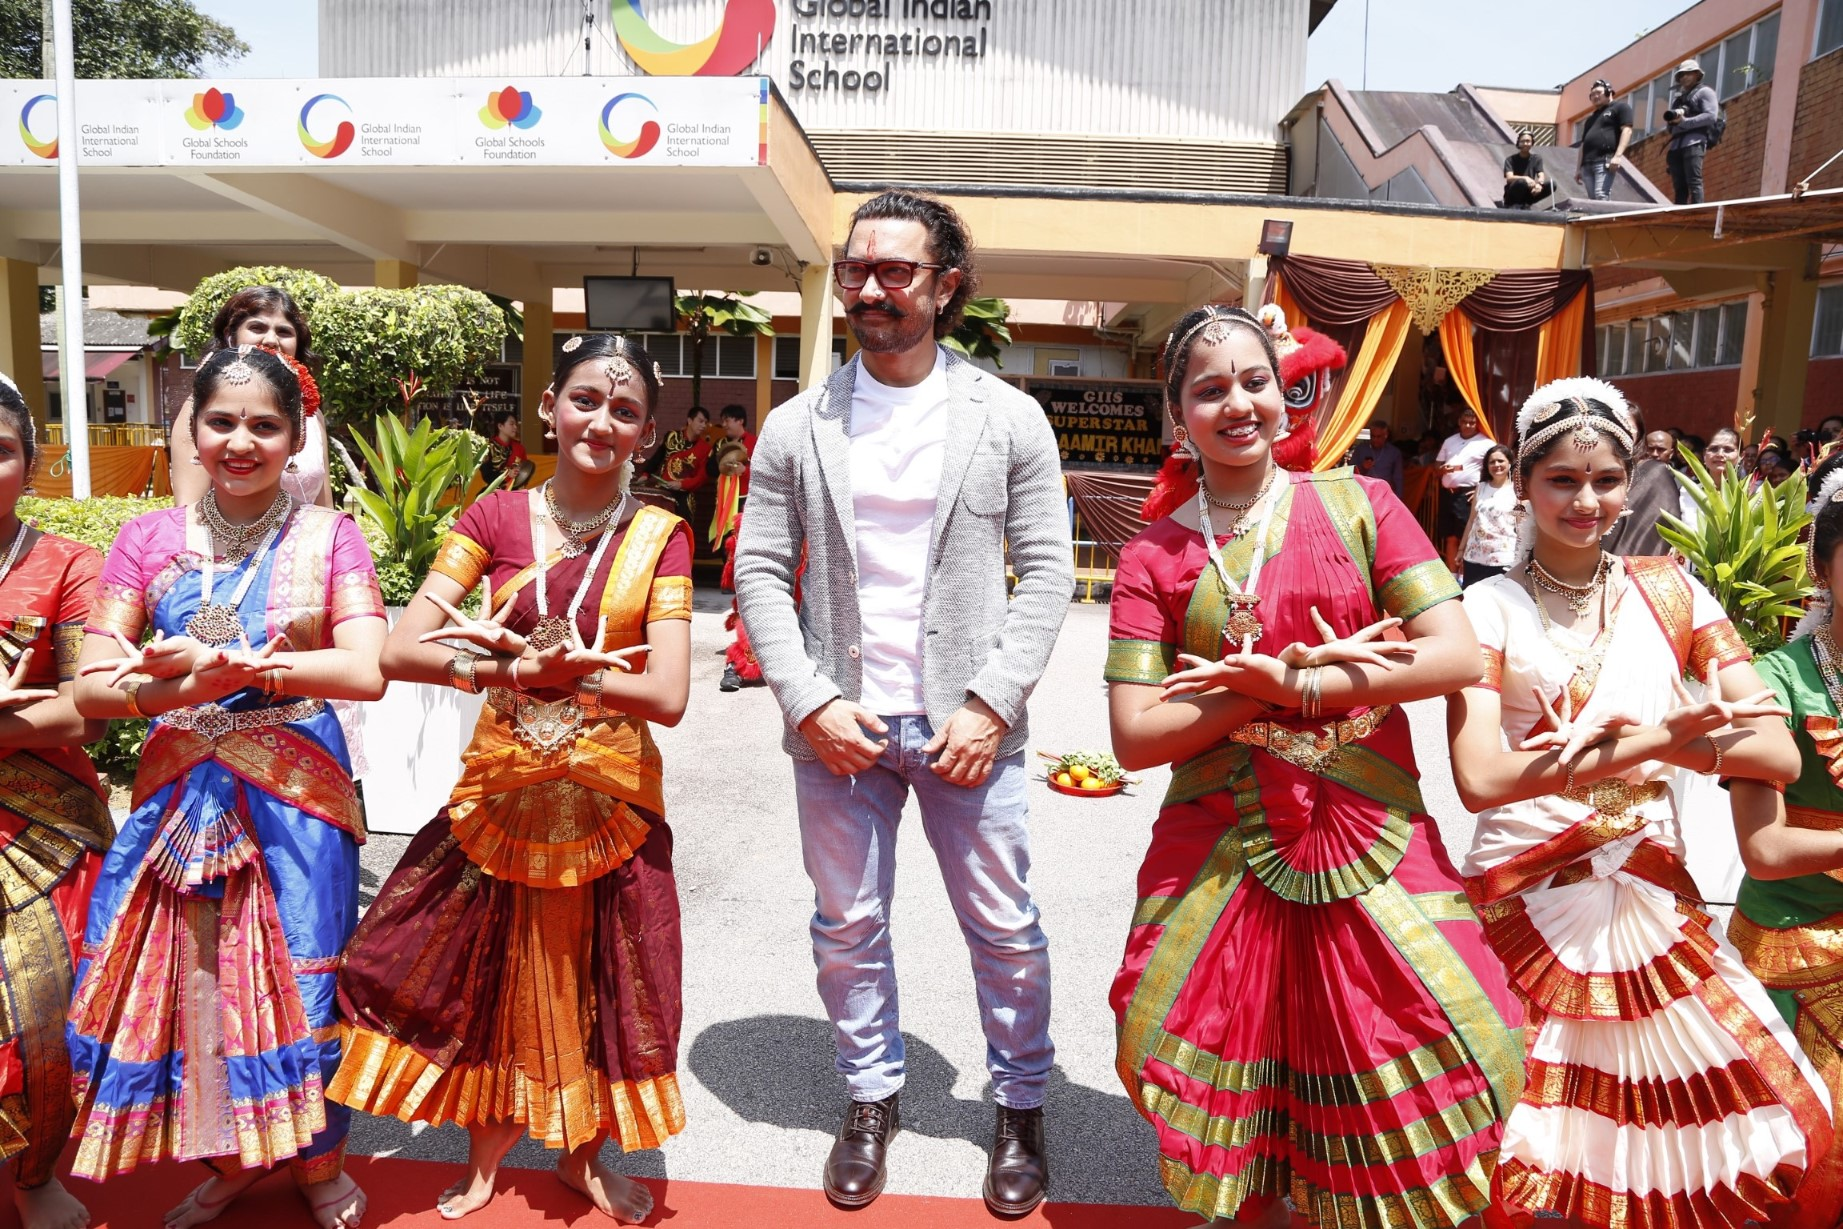 Aamir Khan being welcomed to Global Indian International School by students.